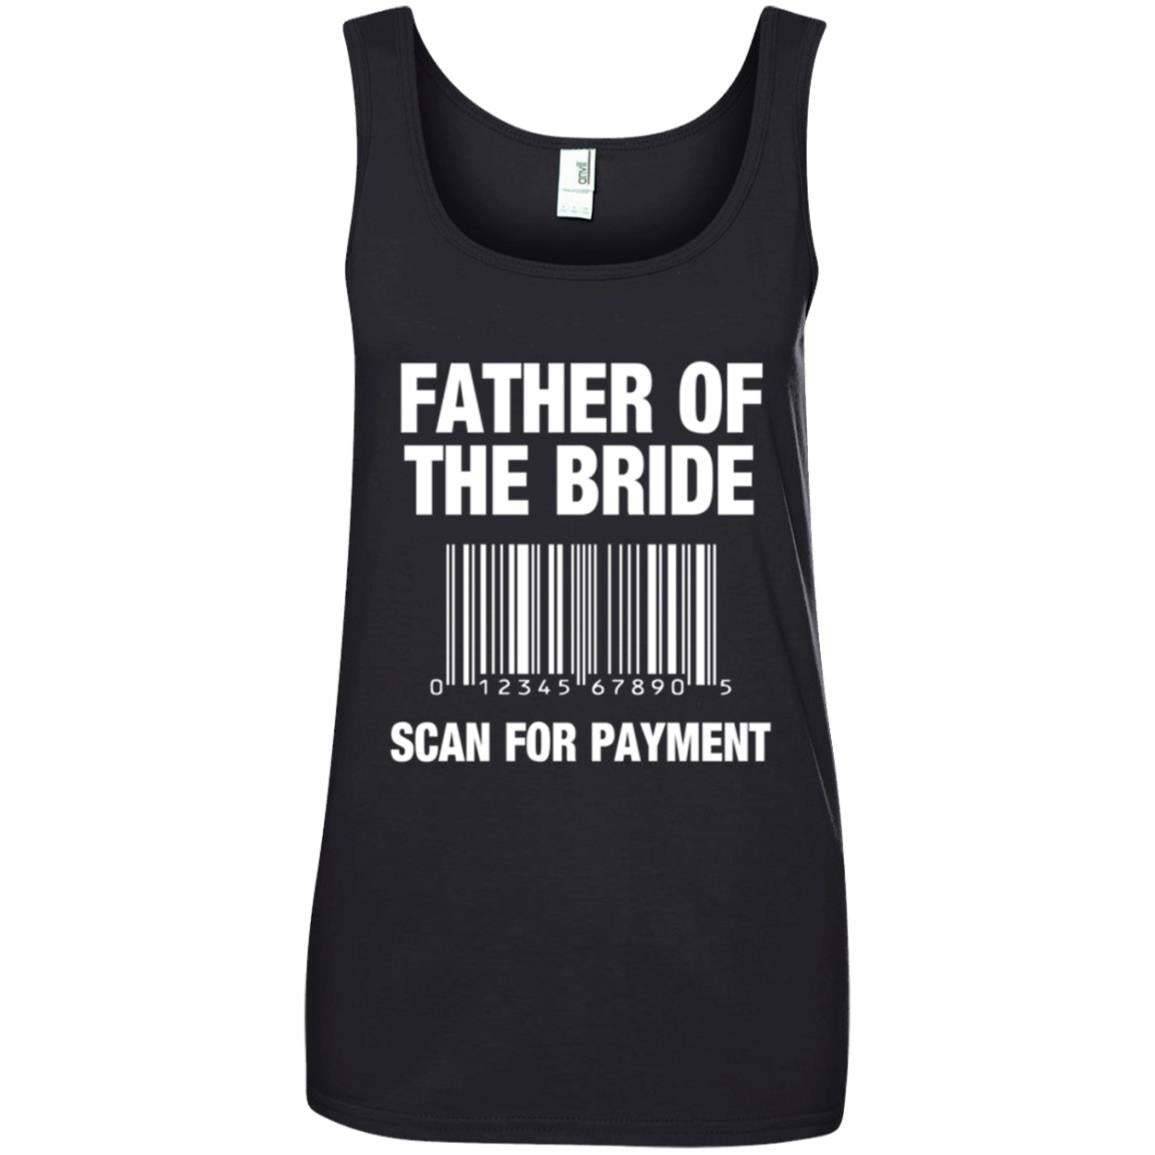 FATHER OF THE BRIDE Shirt Scan For Payment Ladies Tank Top